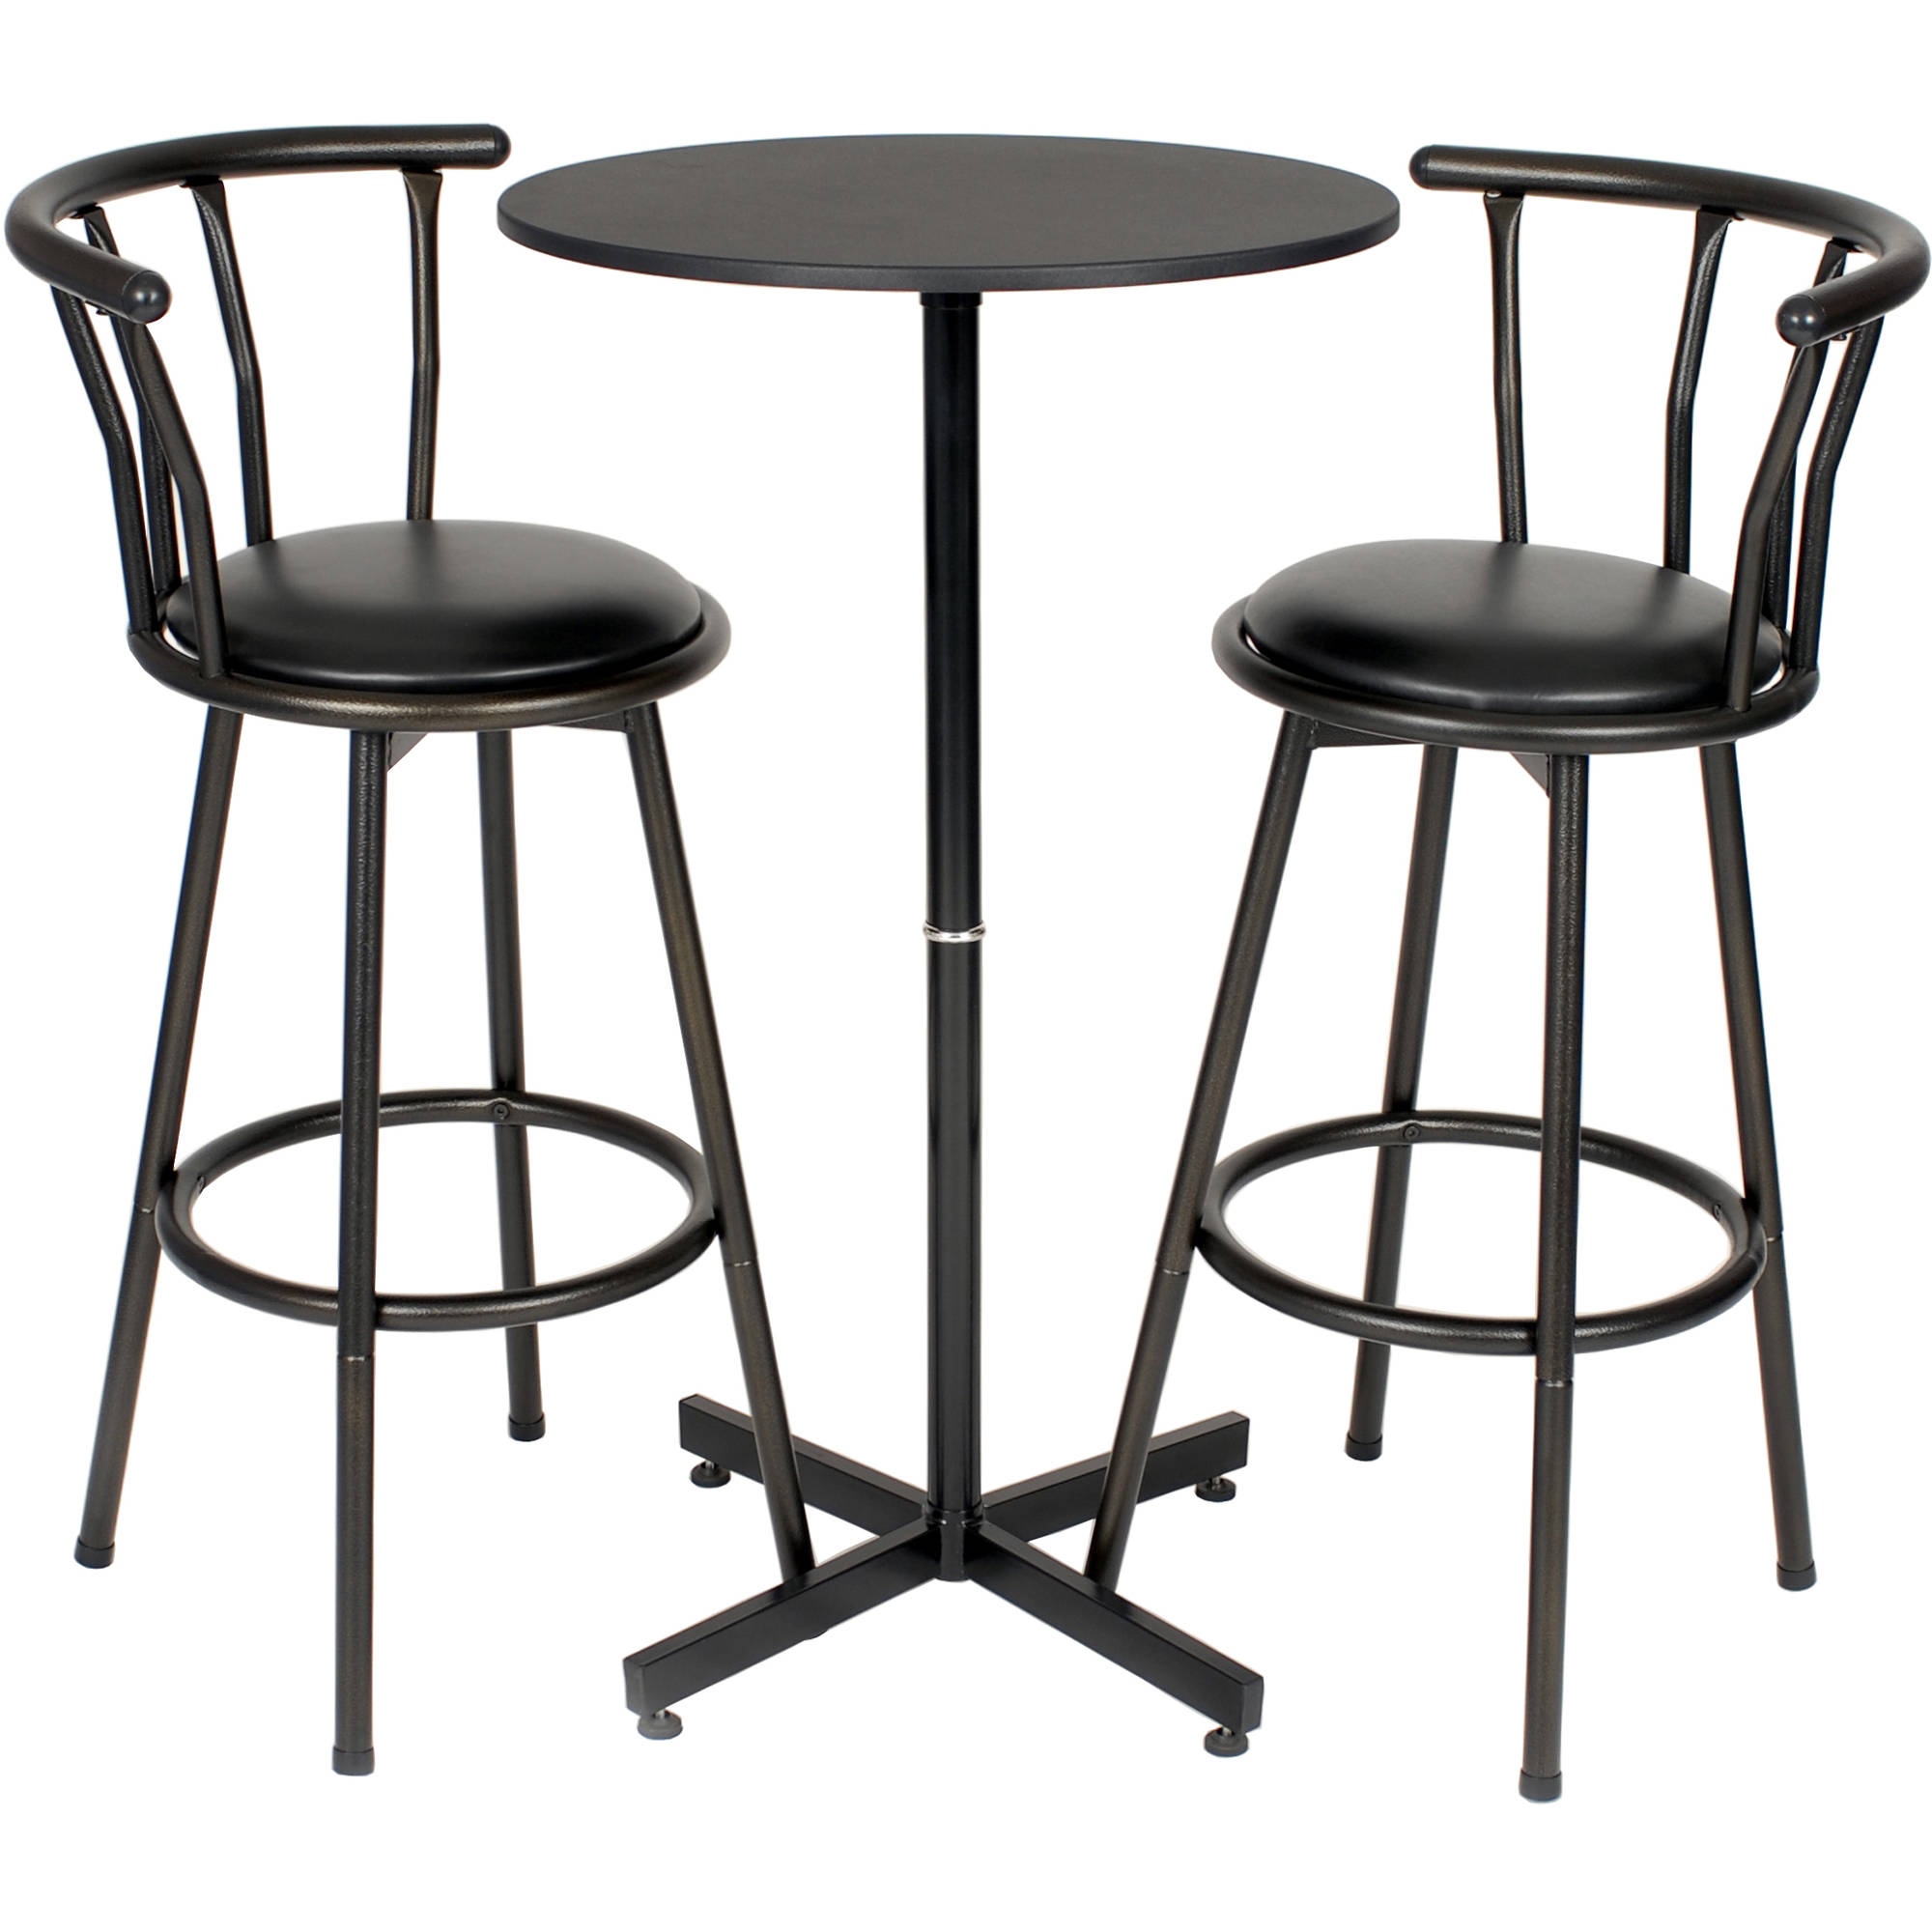 Roundhill Nor Hill 3 Piece Black Metal Height Bar Table Set with 2